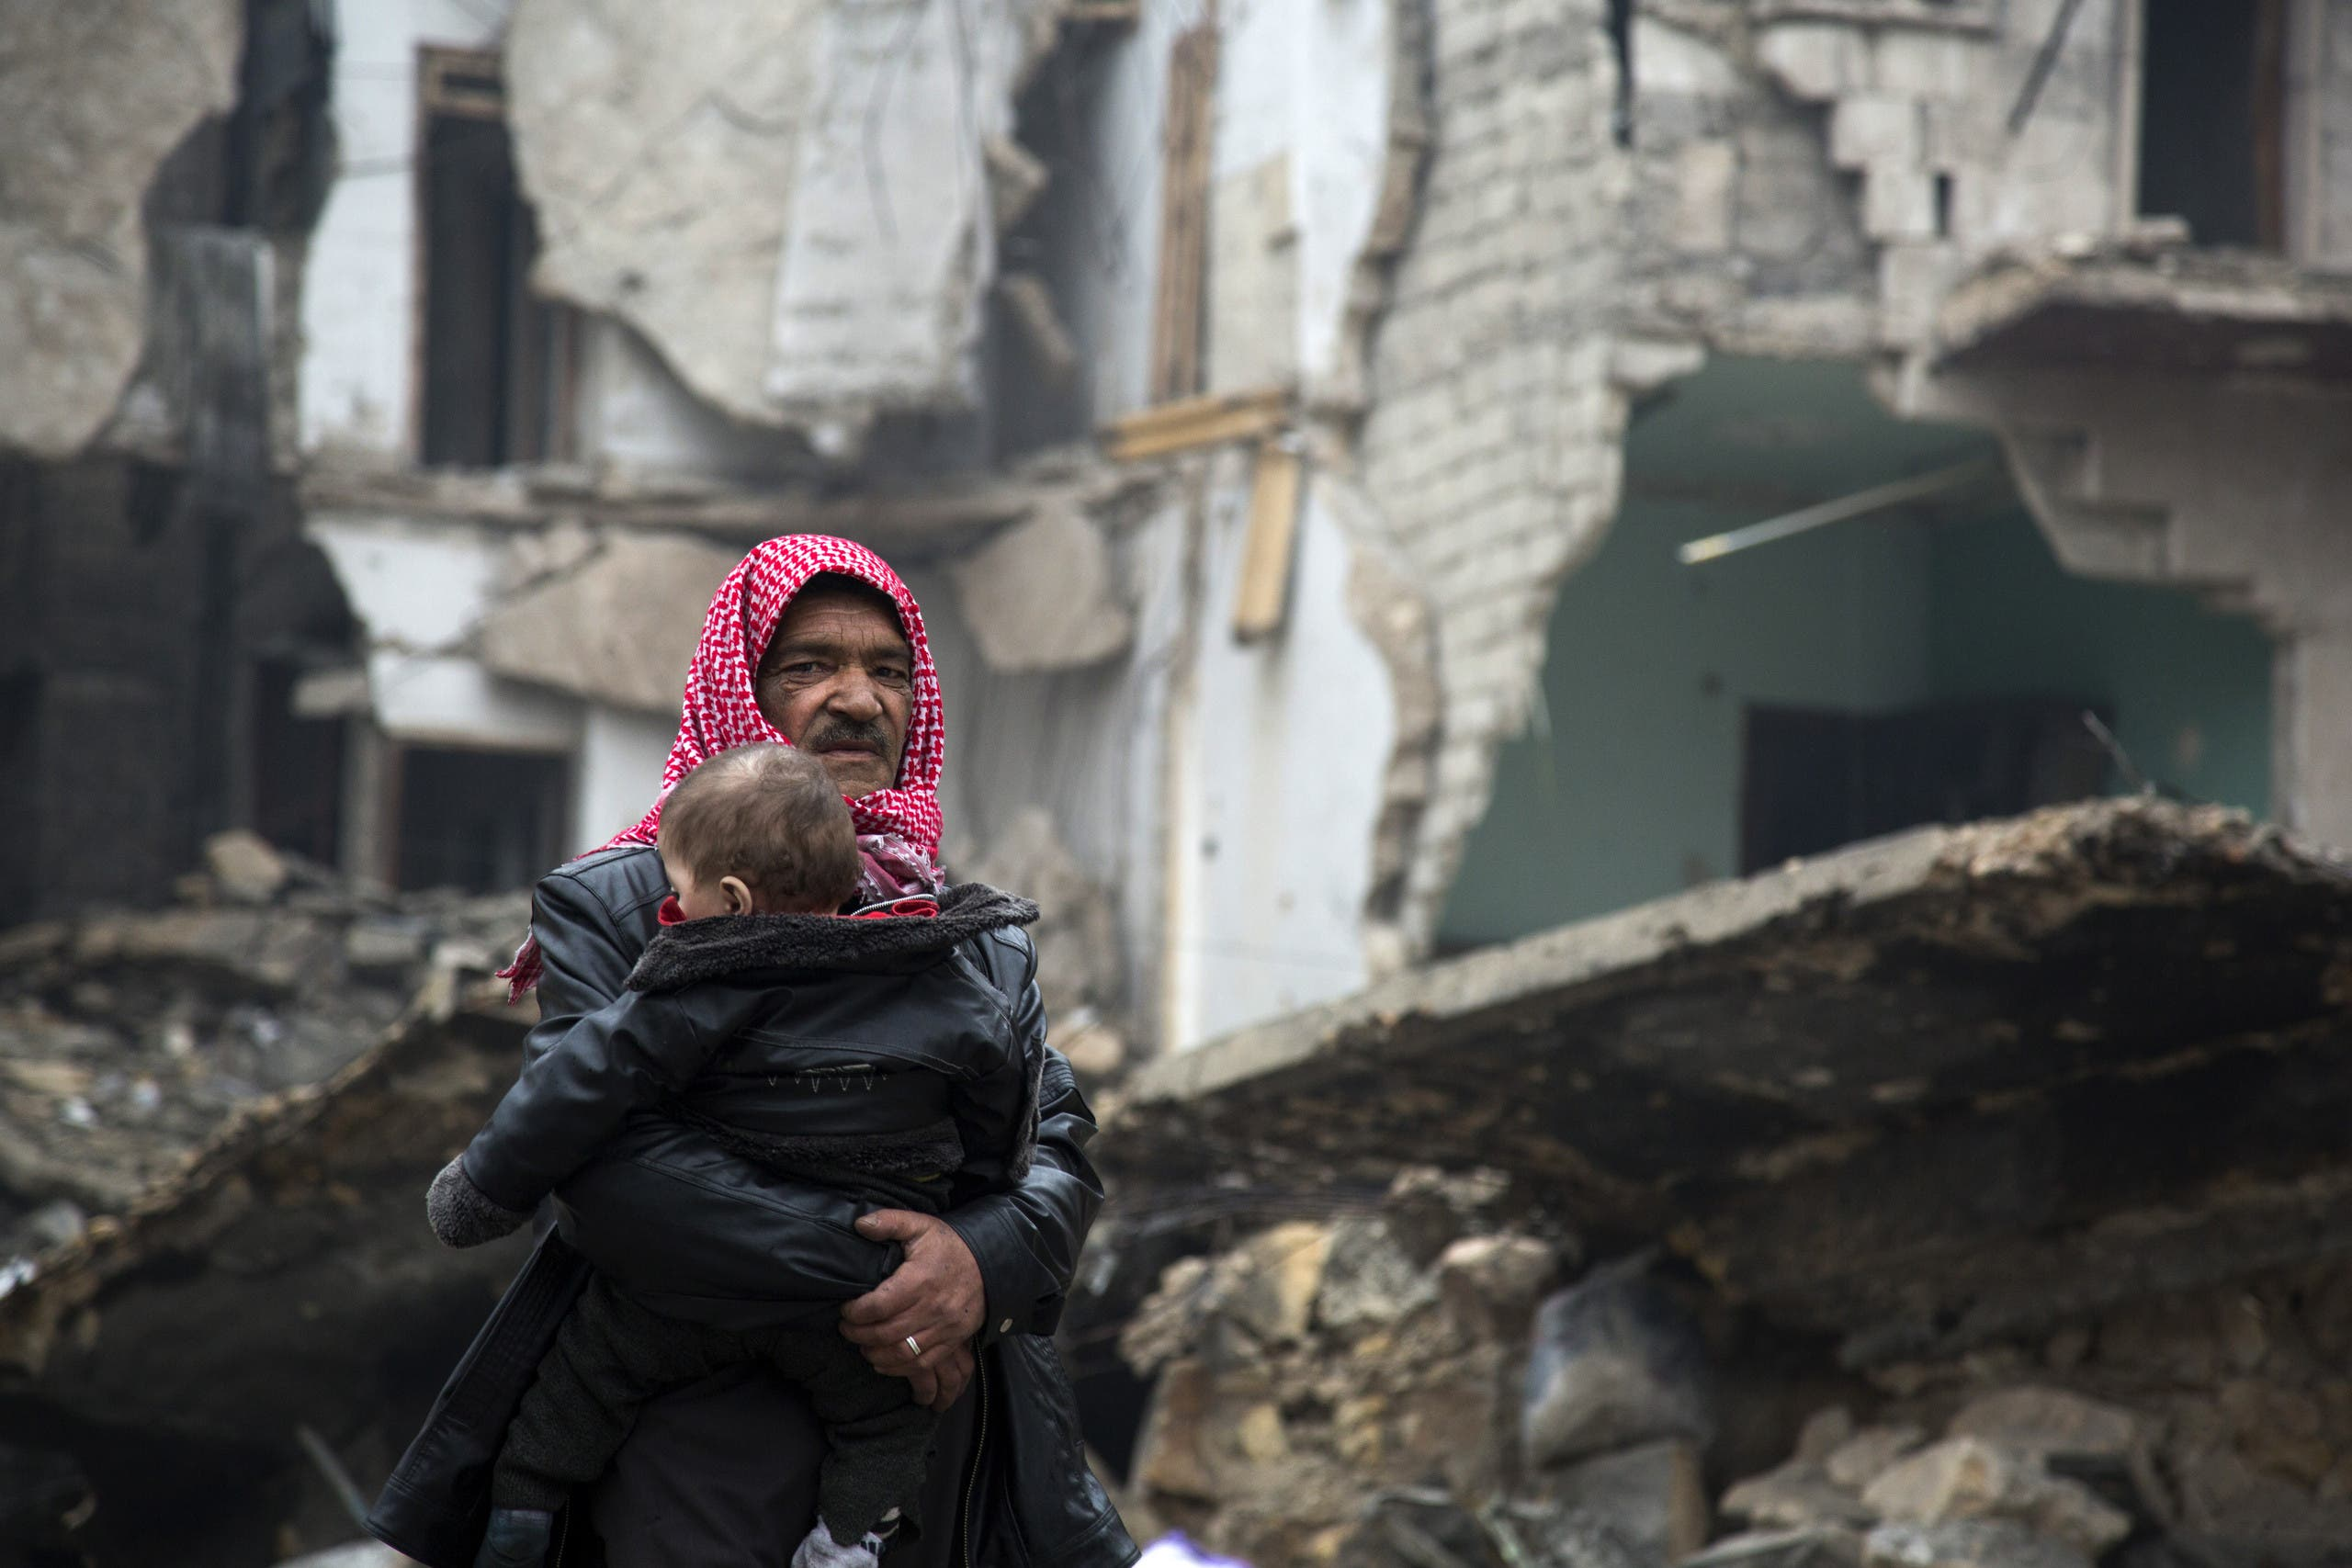 sources in the Free Syrian Army reported that the Assad regime forces resumed shelling on the eastern neighborhoods of Aleppo. AFP